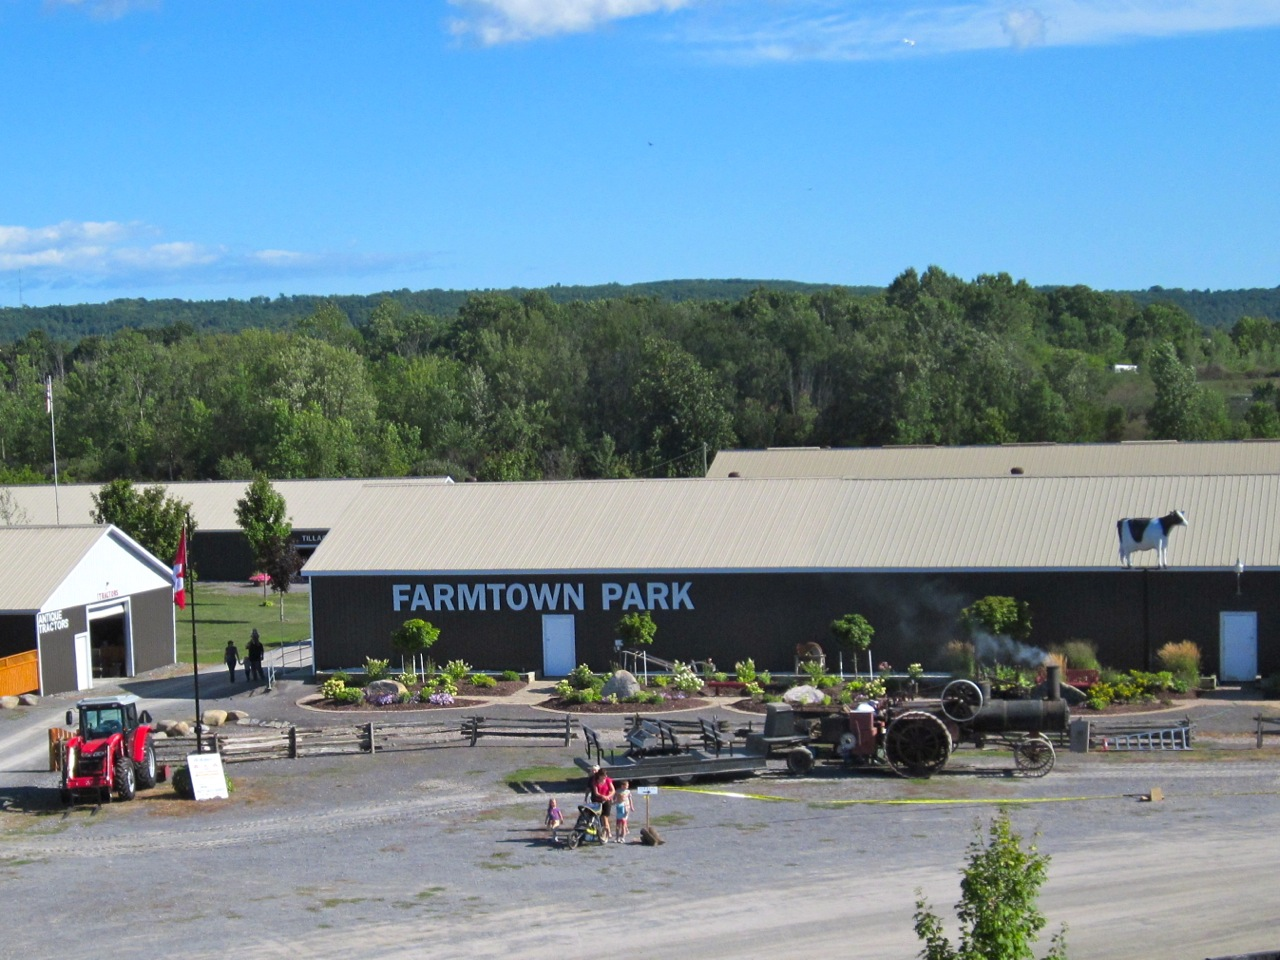 Farmtown Park, home of the Hastings County Museum of Agricultural Heritage.